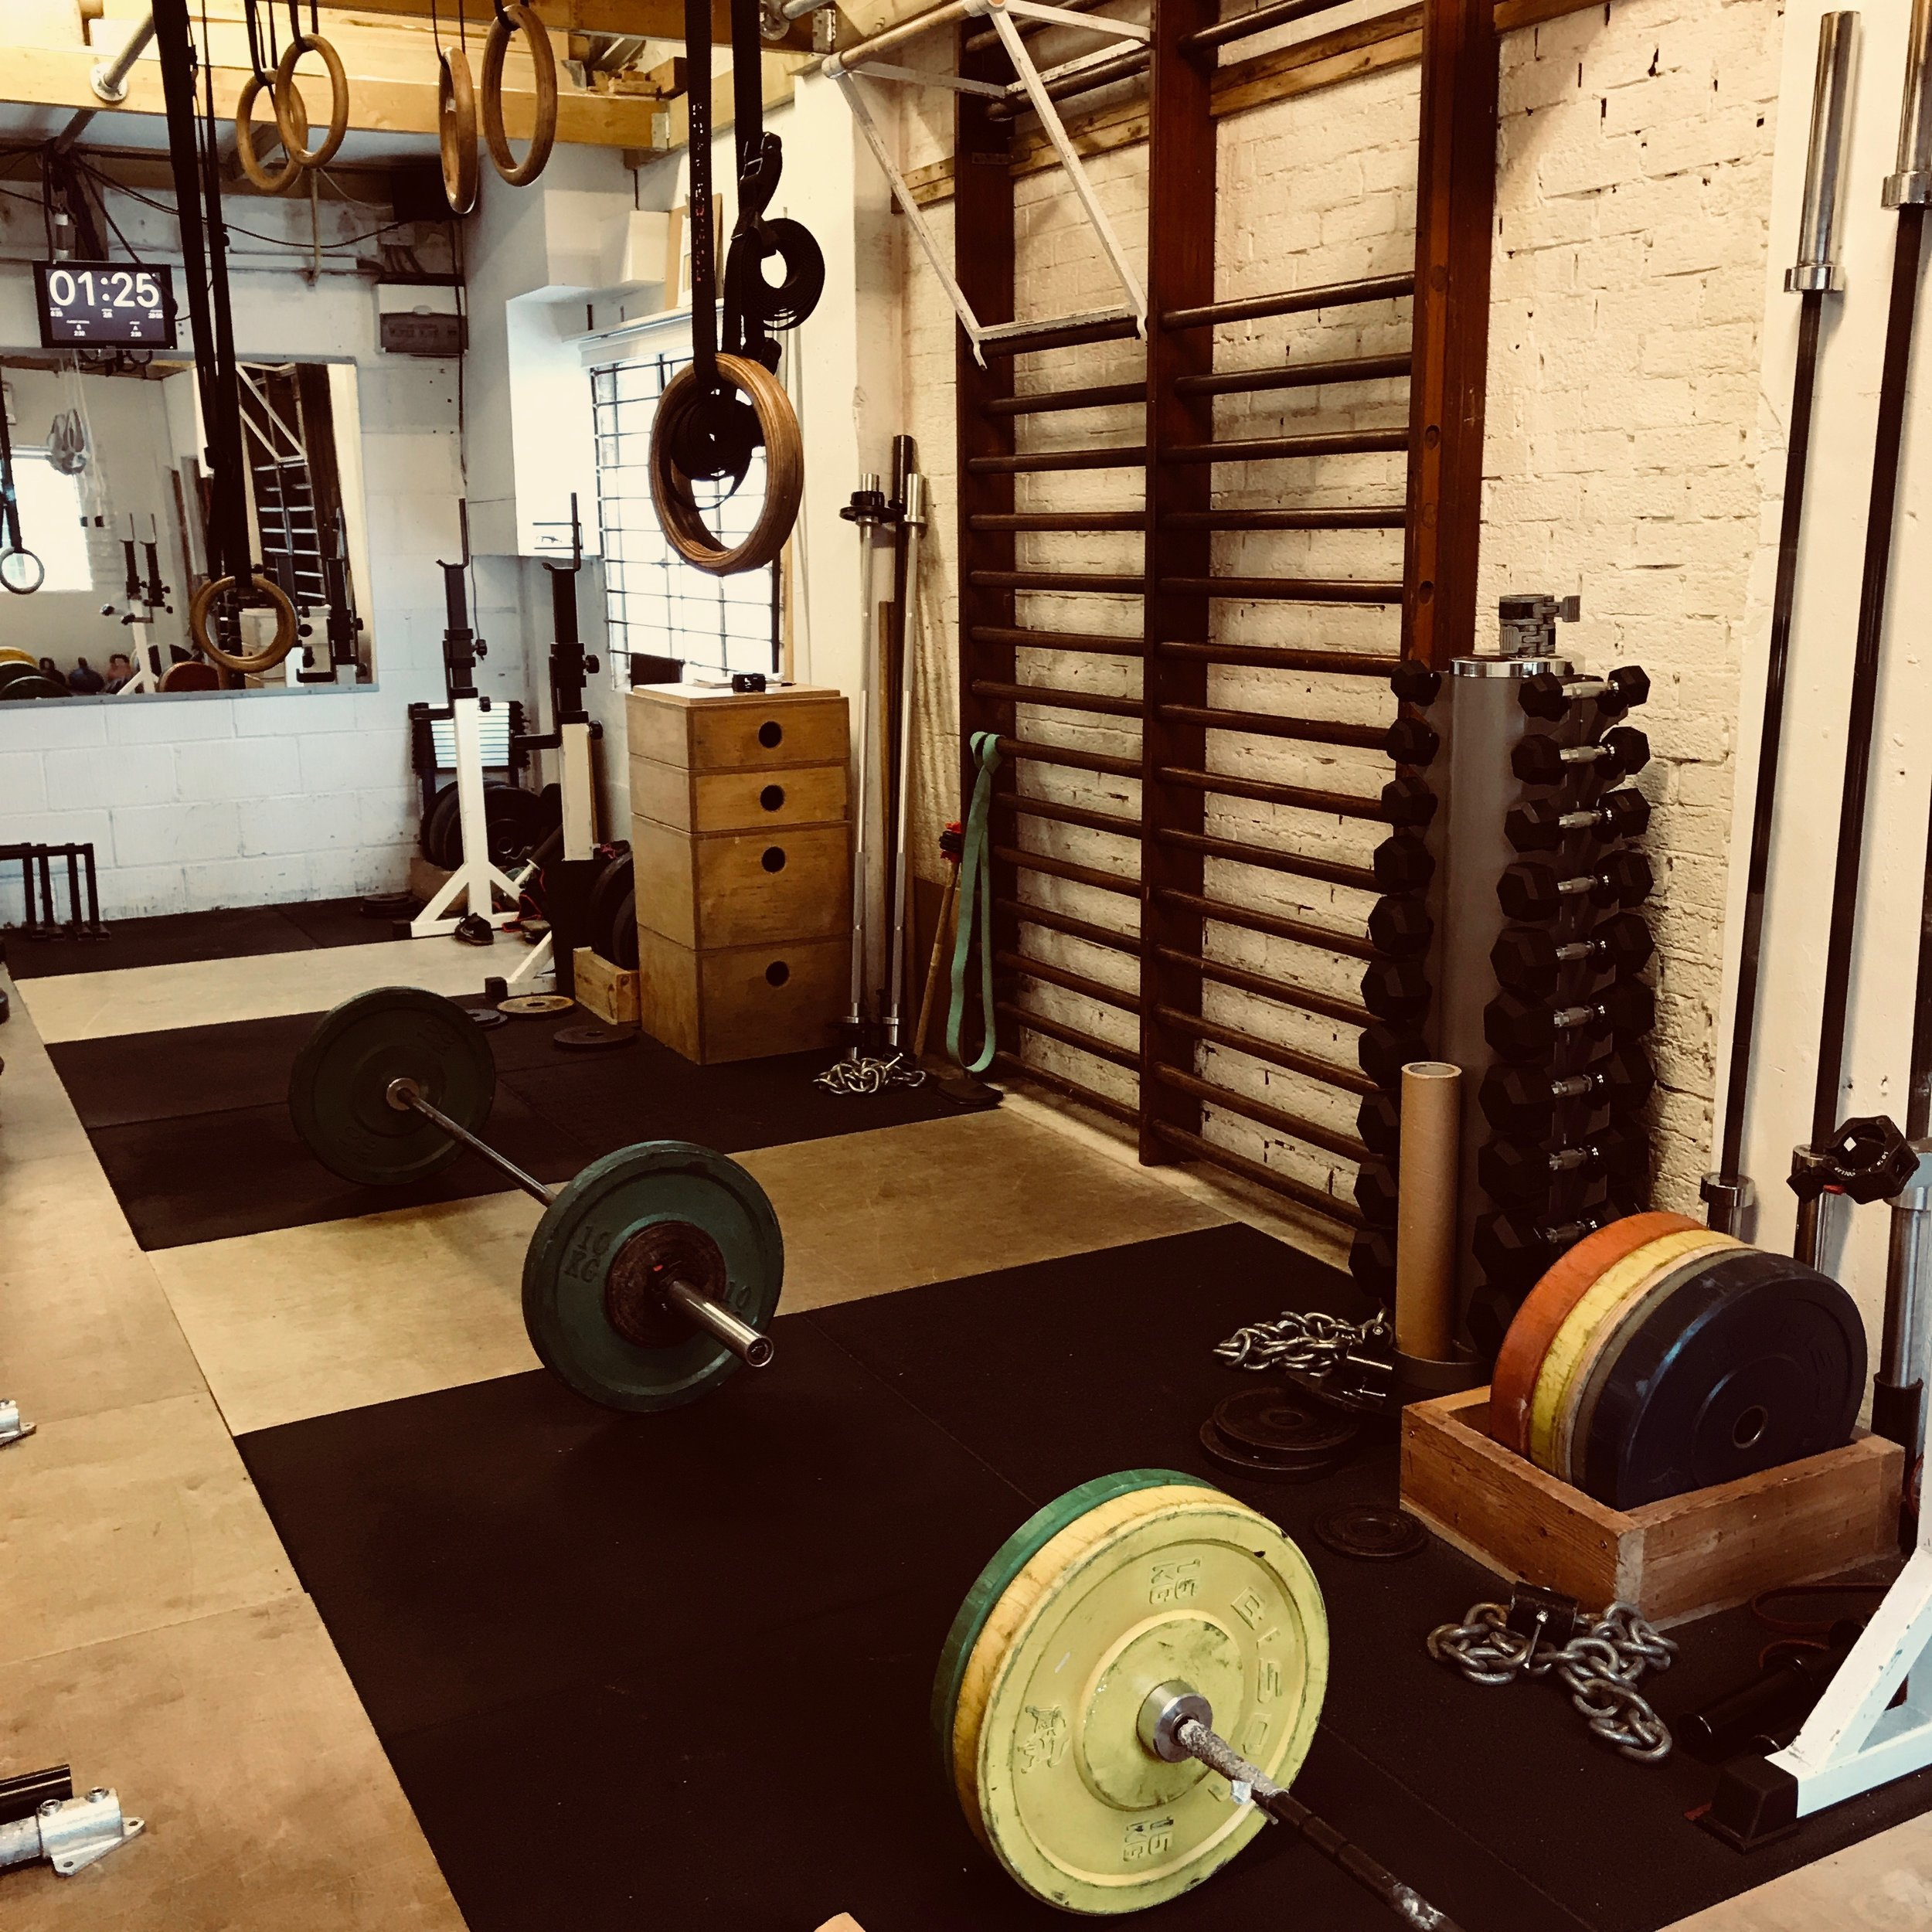 Welcome toThe Original Gym, Cambridge - The Original Gym is a private gym studio in Cambridge offering one-to-one physical training, as well as small group classesfor upper and lower body strength, and movement & mobility.